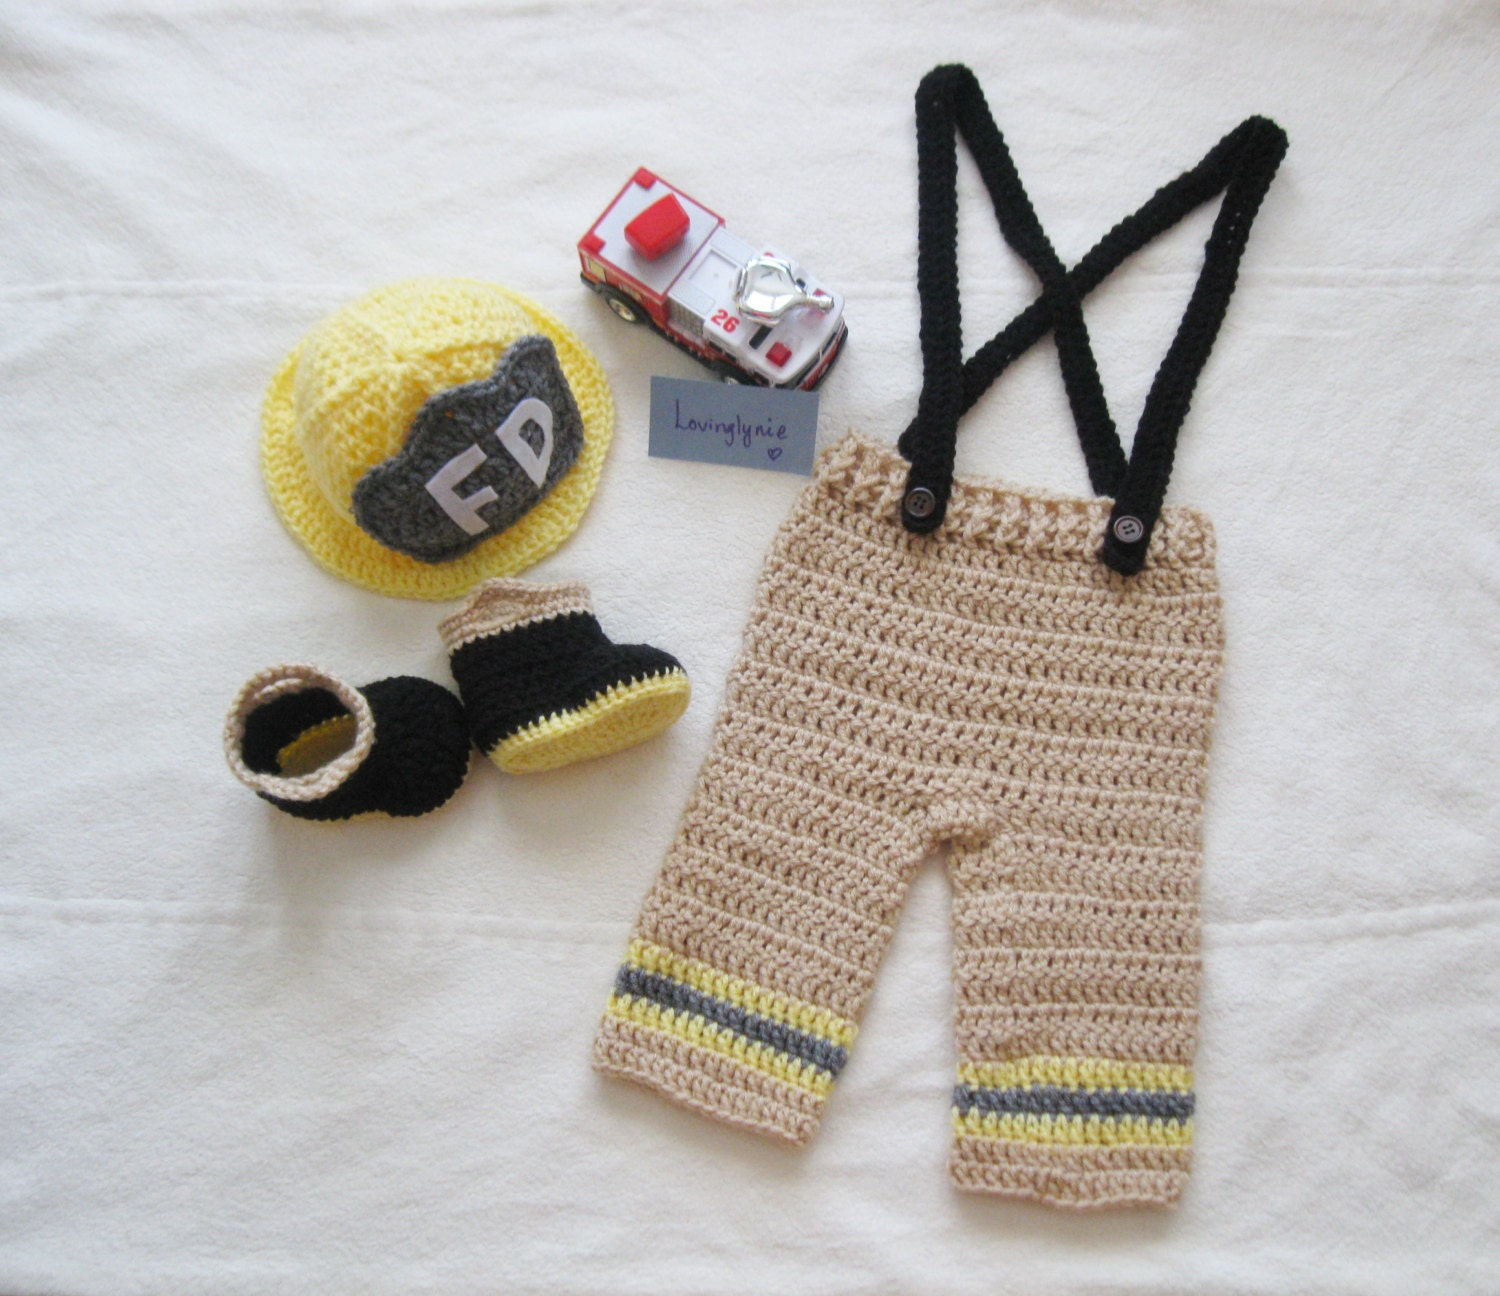 Crochet Patterns For Baby Frocks : Crochet fireman baby outfit / photo prop / baby by LovinglyNie